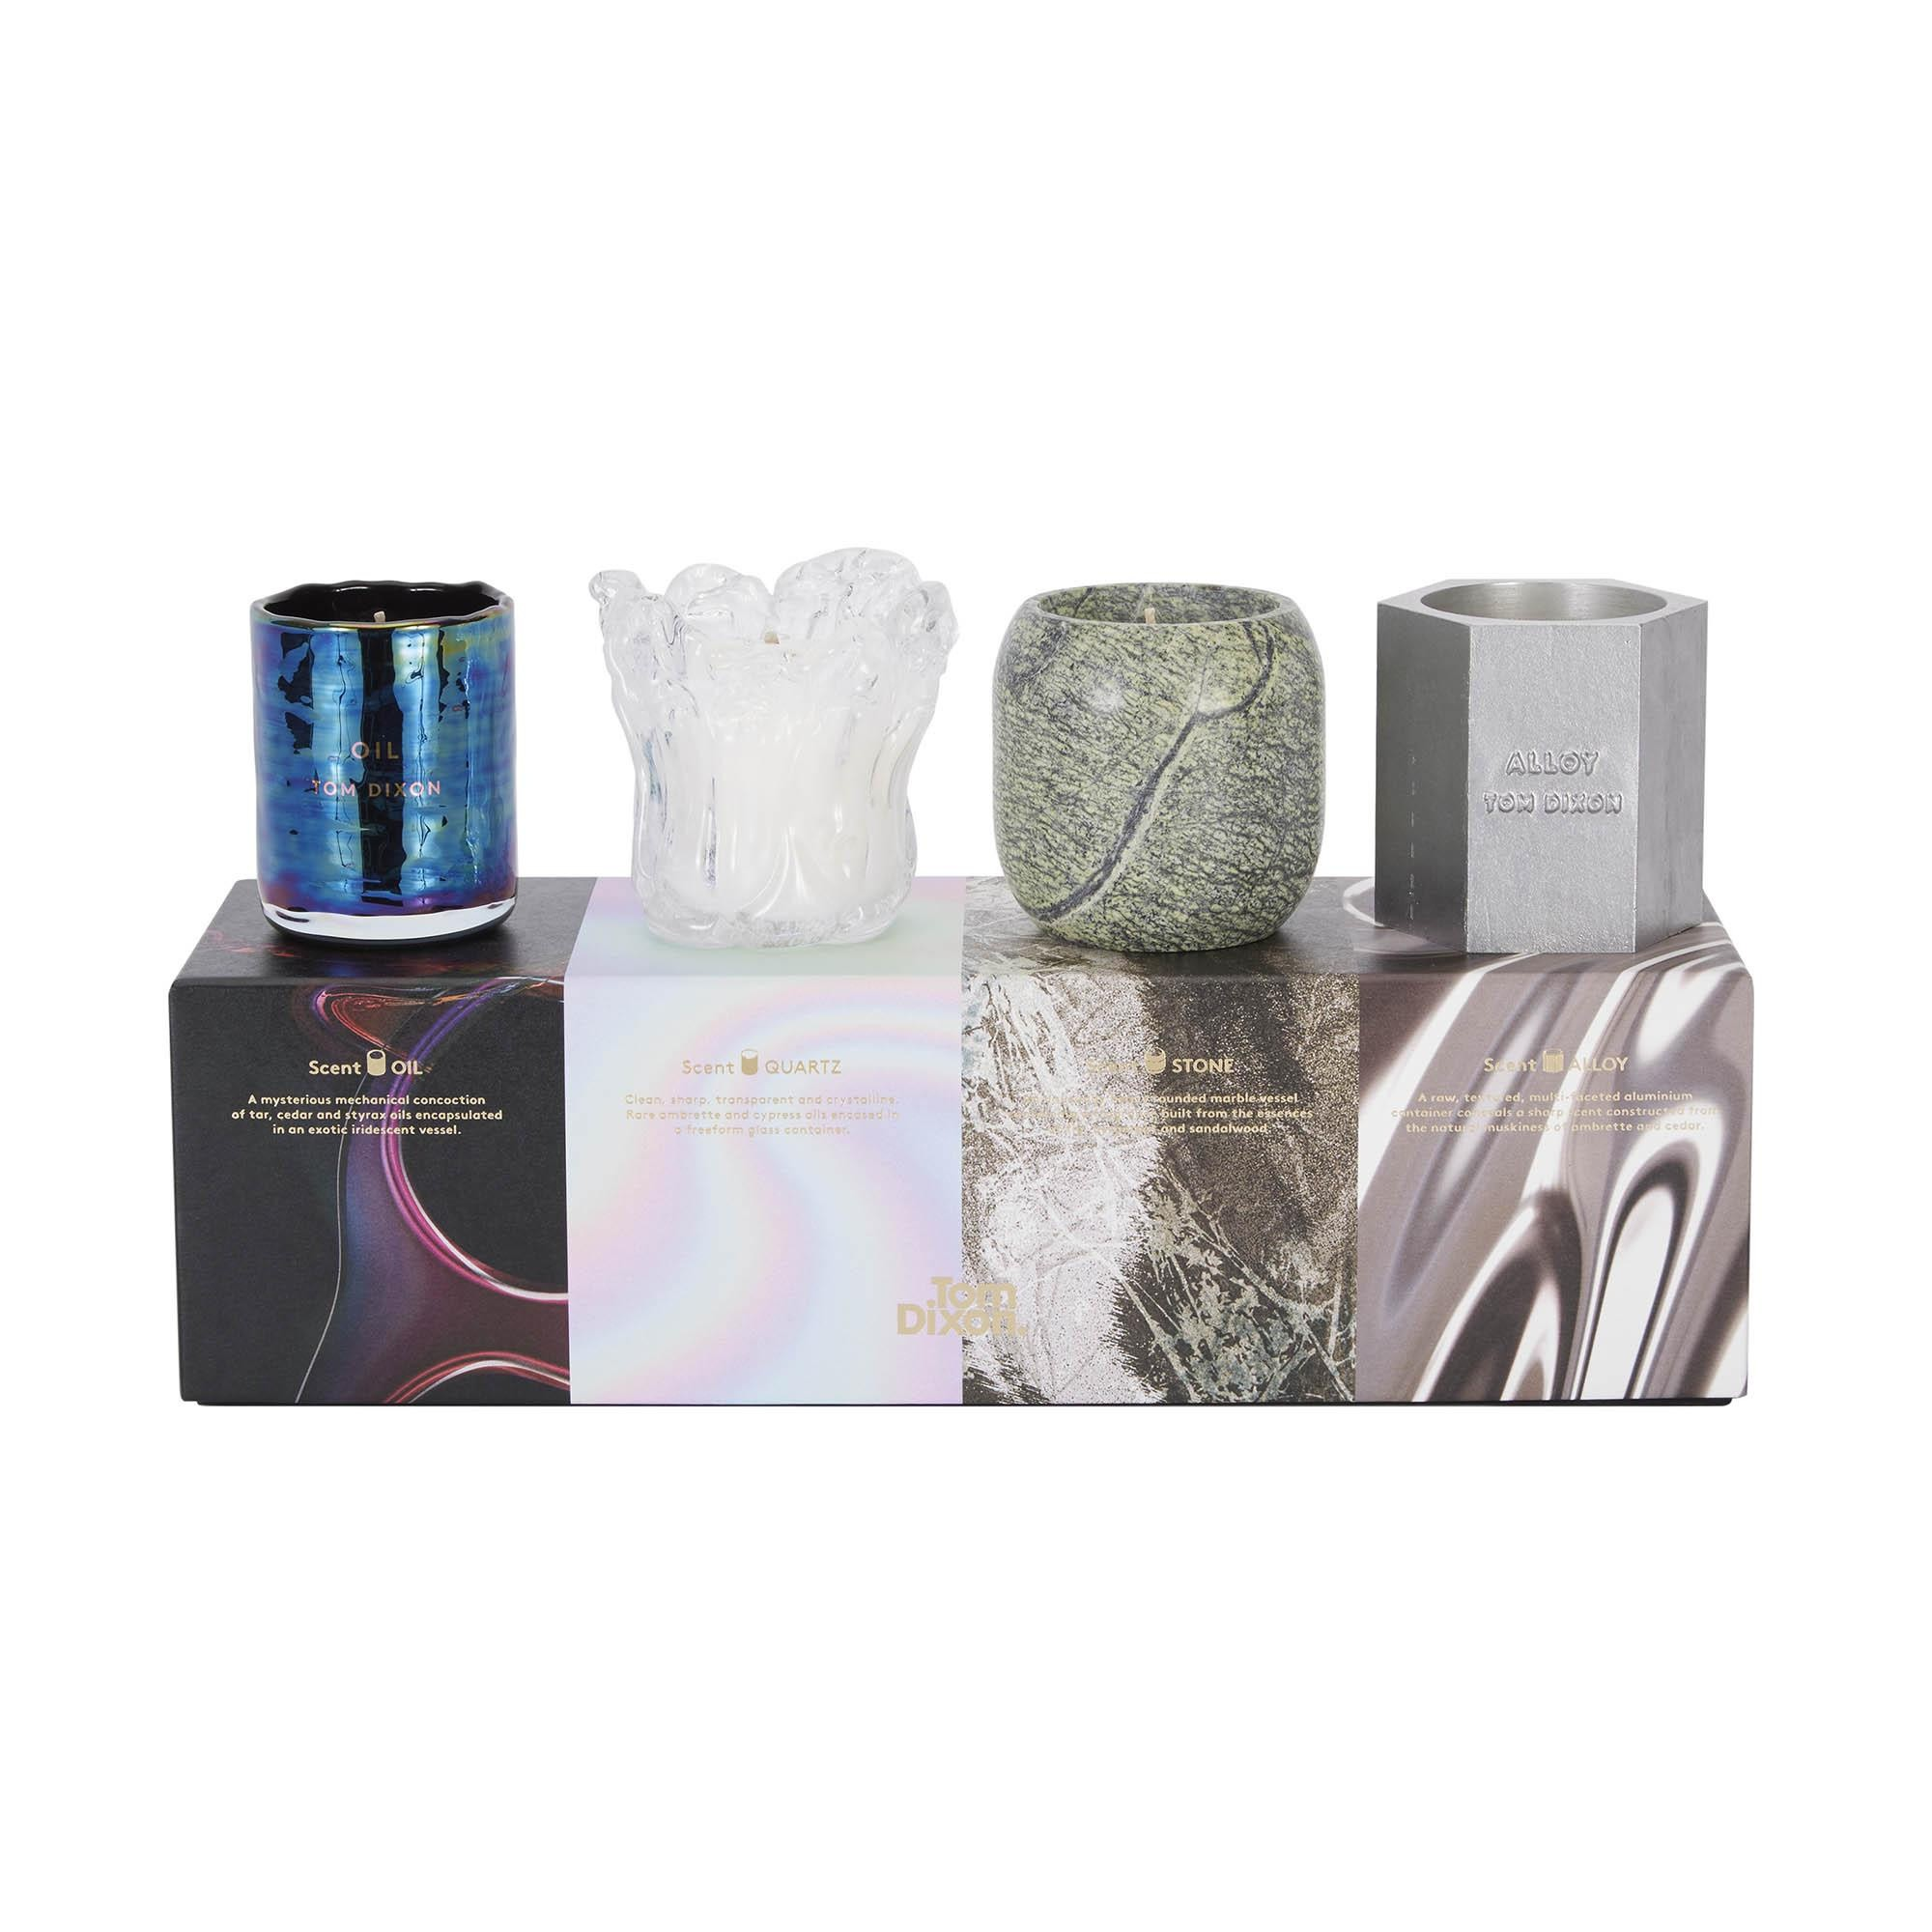 Tom Dixon Couchtisch Materialism Gift Set Candles